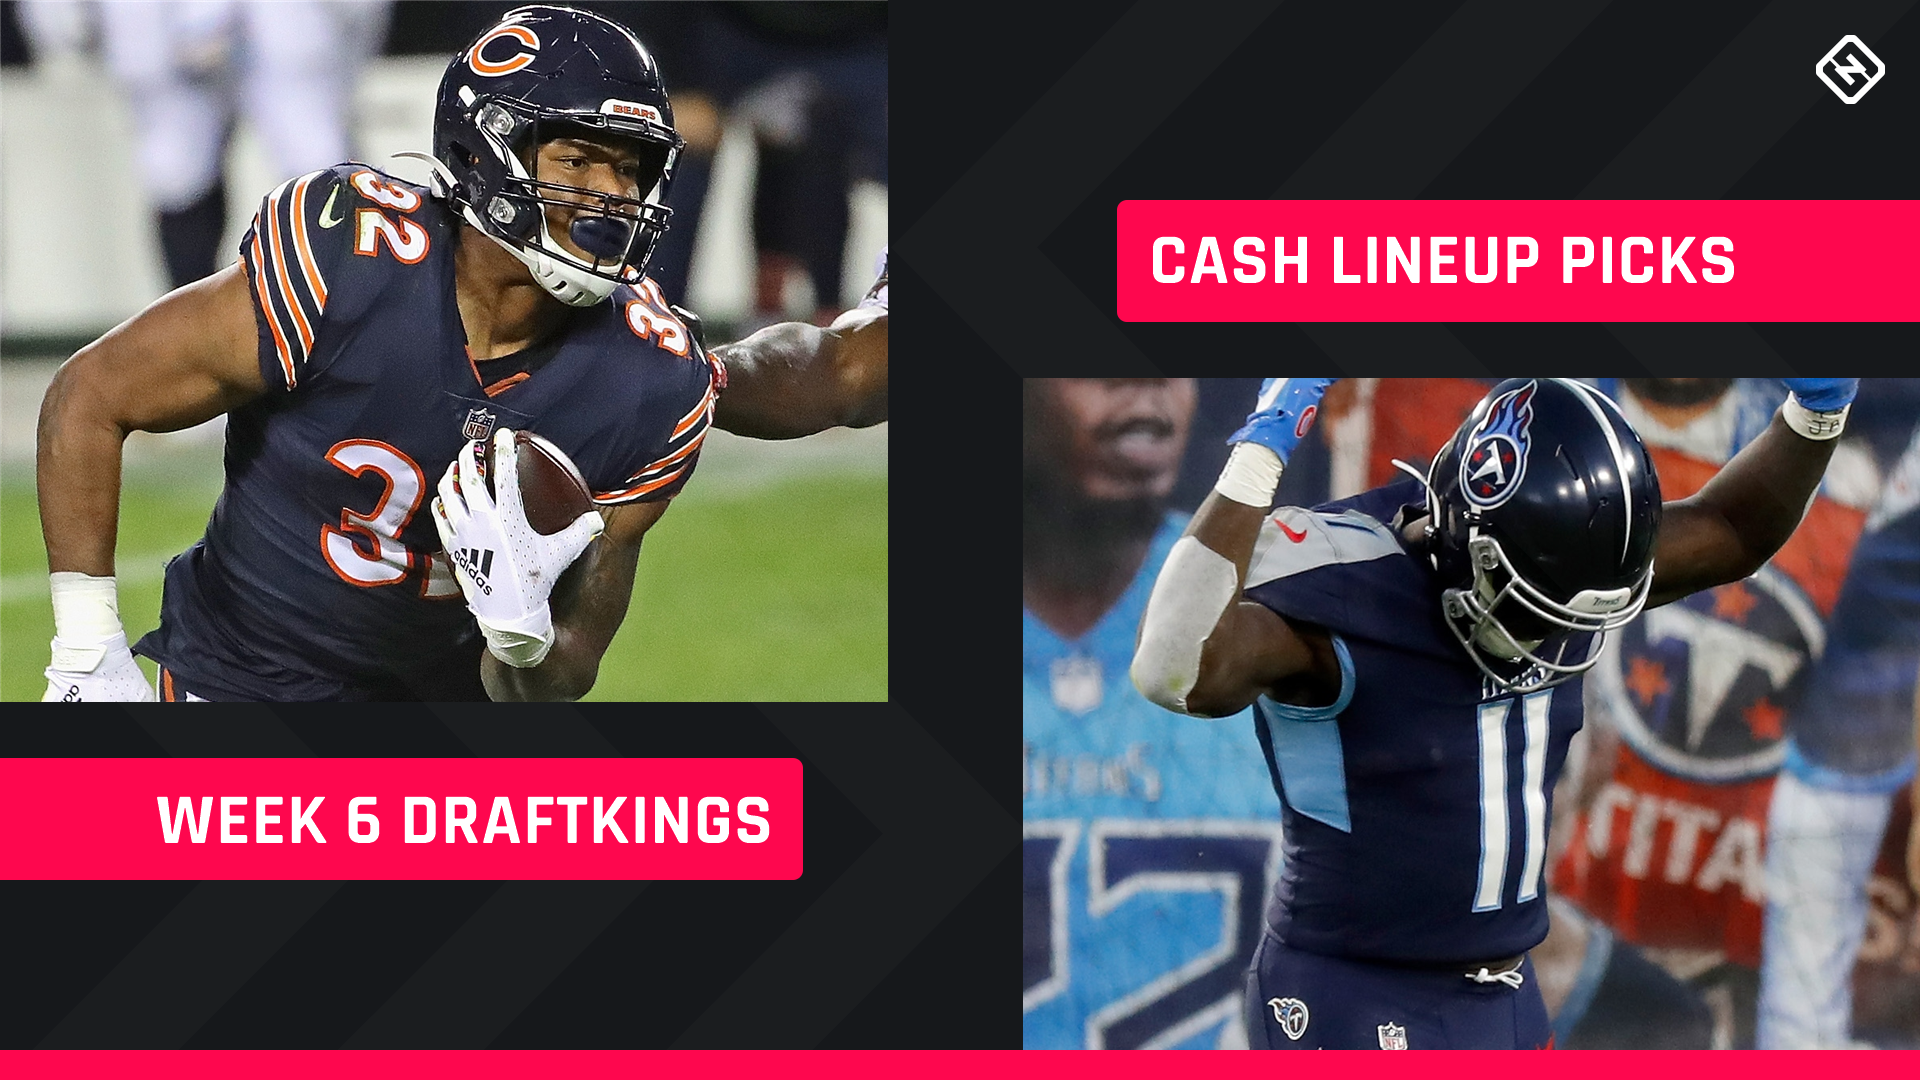 Week 6 DraftKings Picks: NFL DFS lineup advice for daily fantasy football cash games